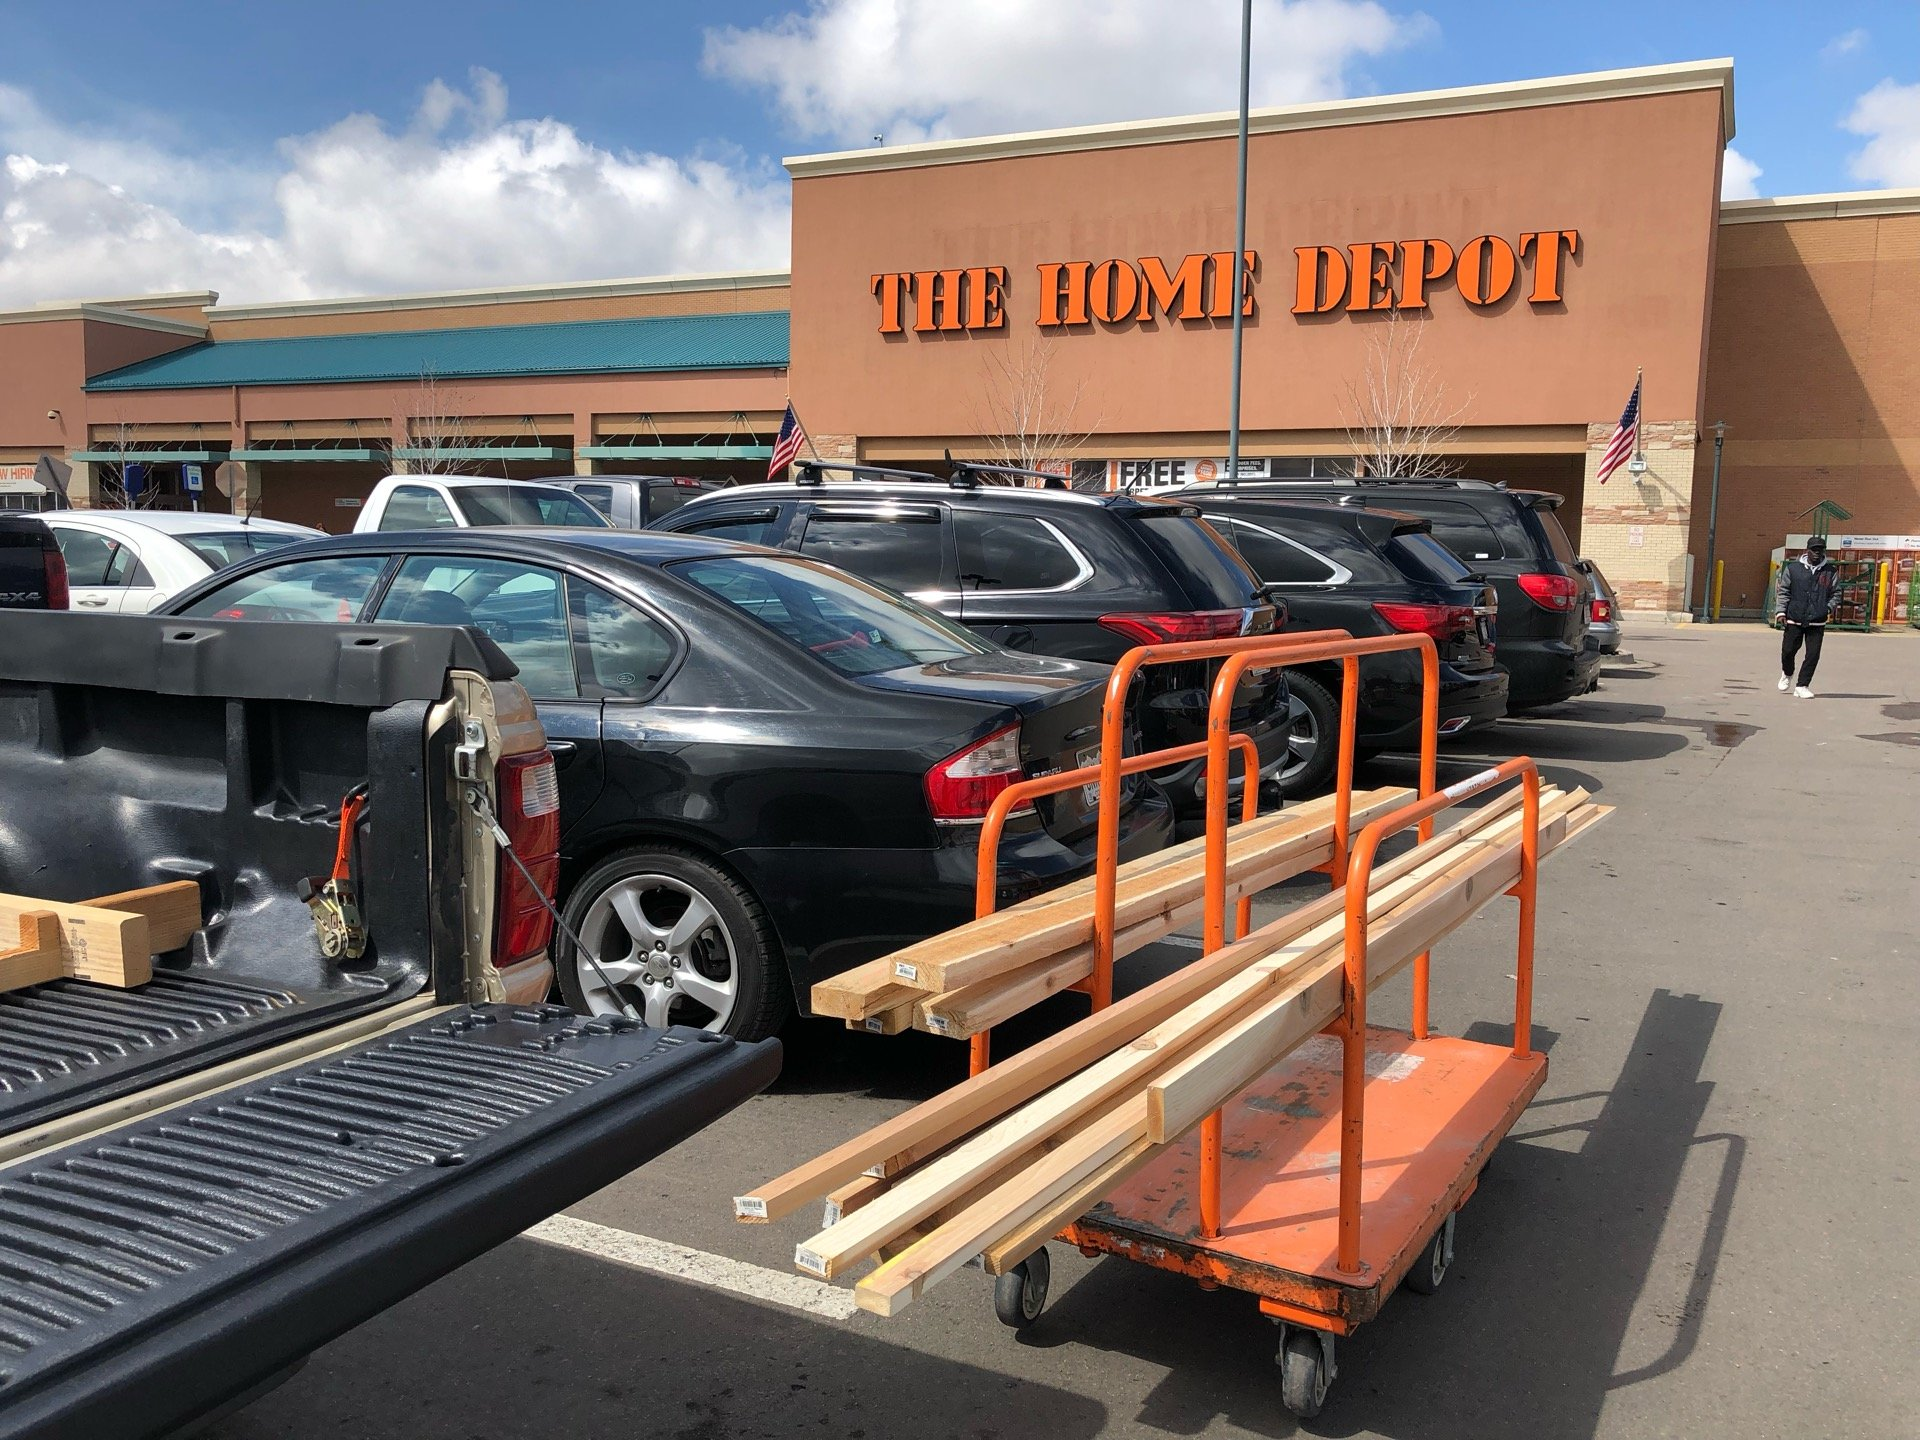 Checked in at The Home Depot